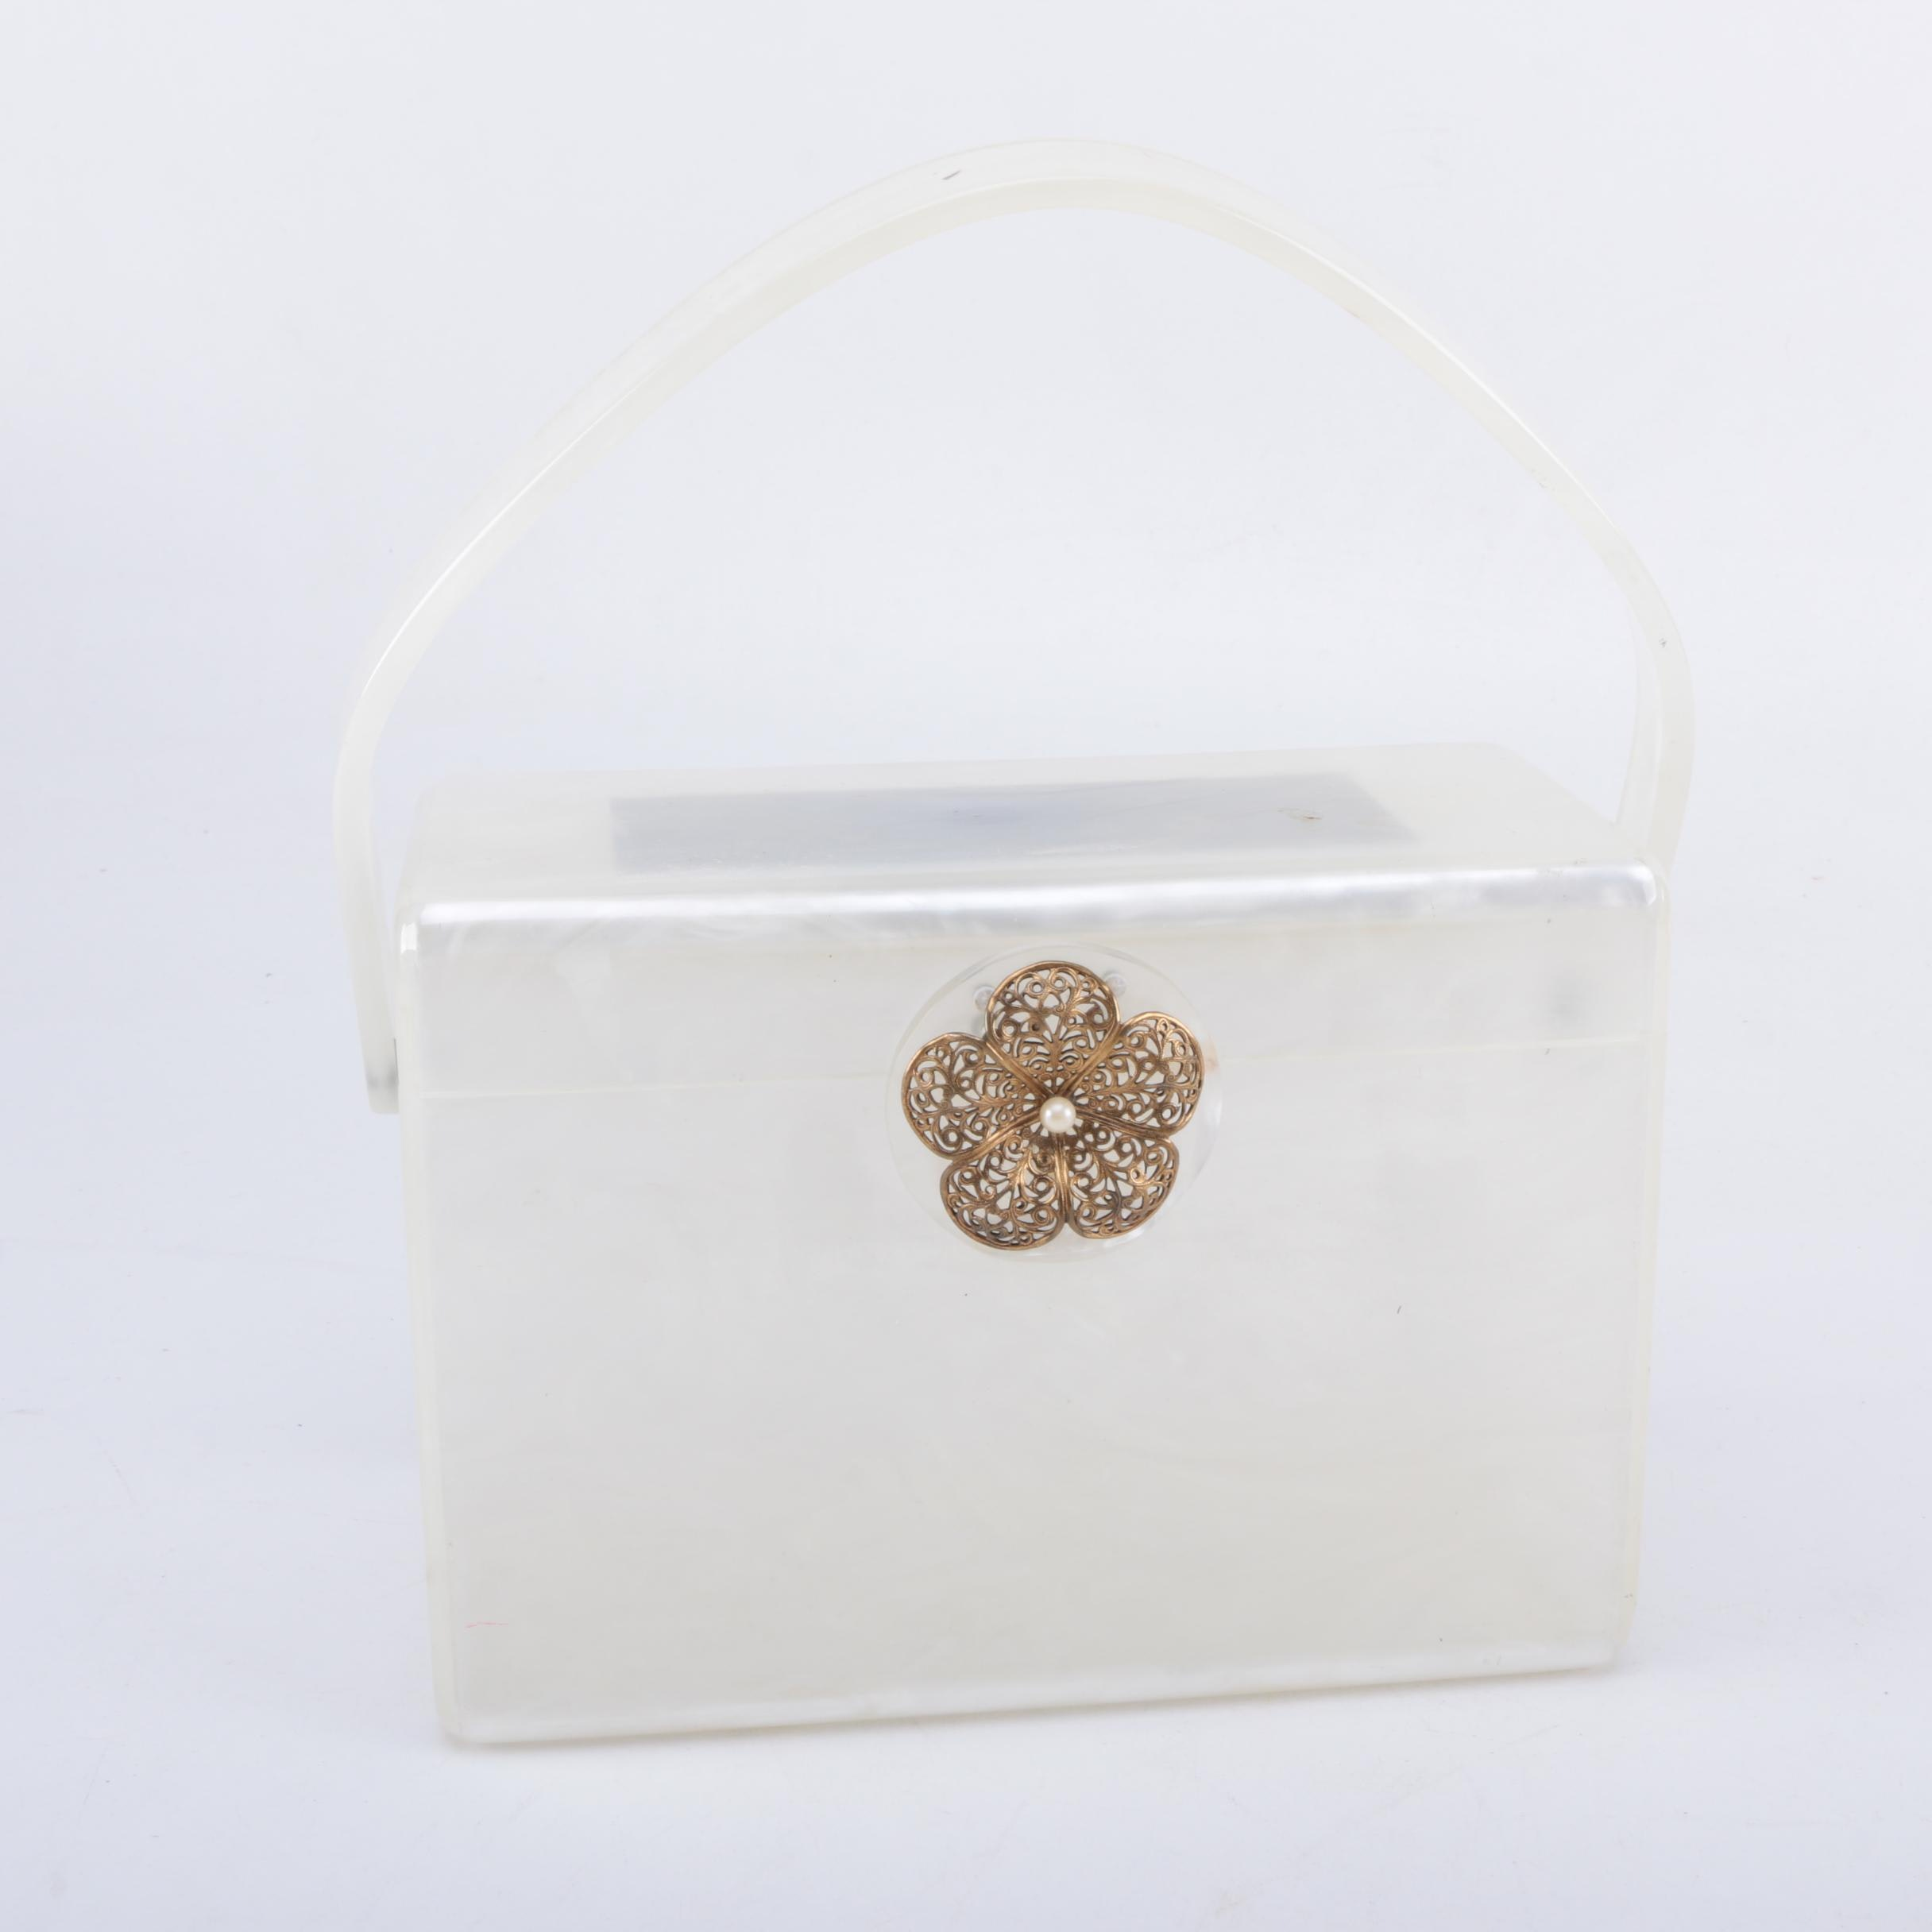 Vintage Wilardy Lucite Handbag with Brass Floral Clasp